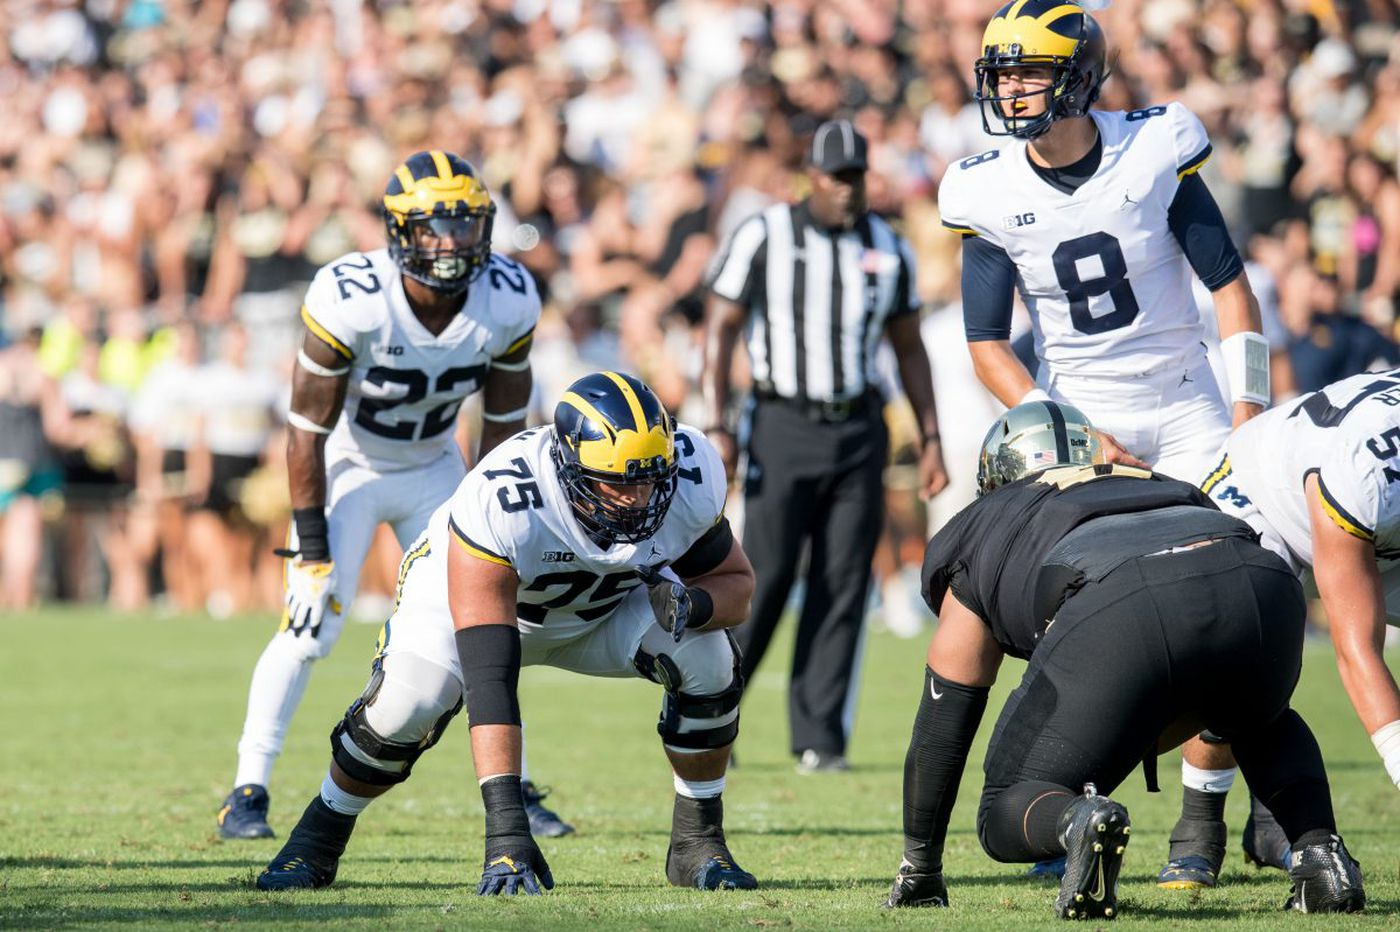 Jon Runyan follows in father's footsteps at Michigan